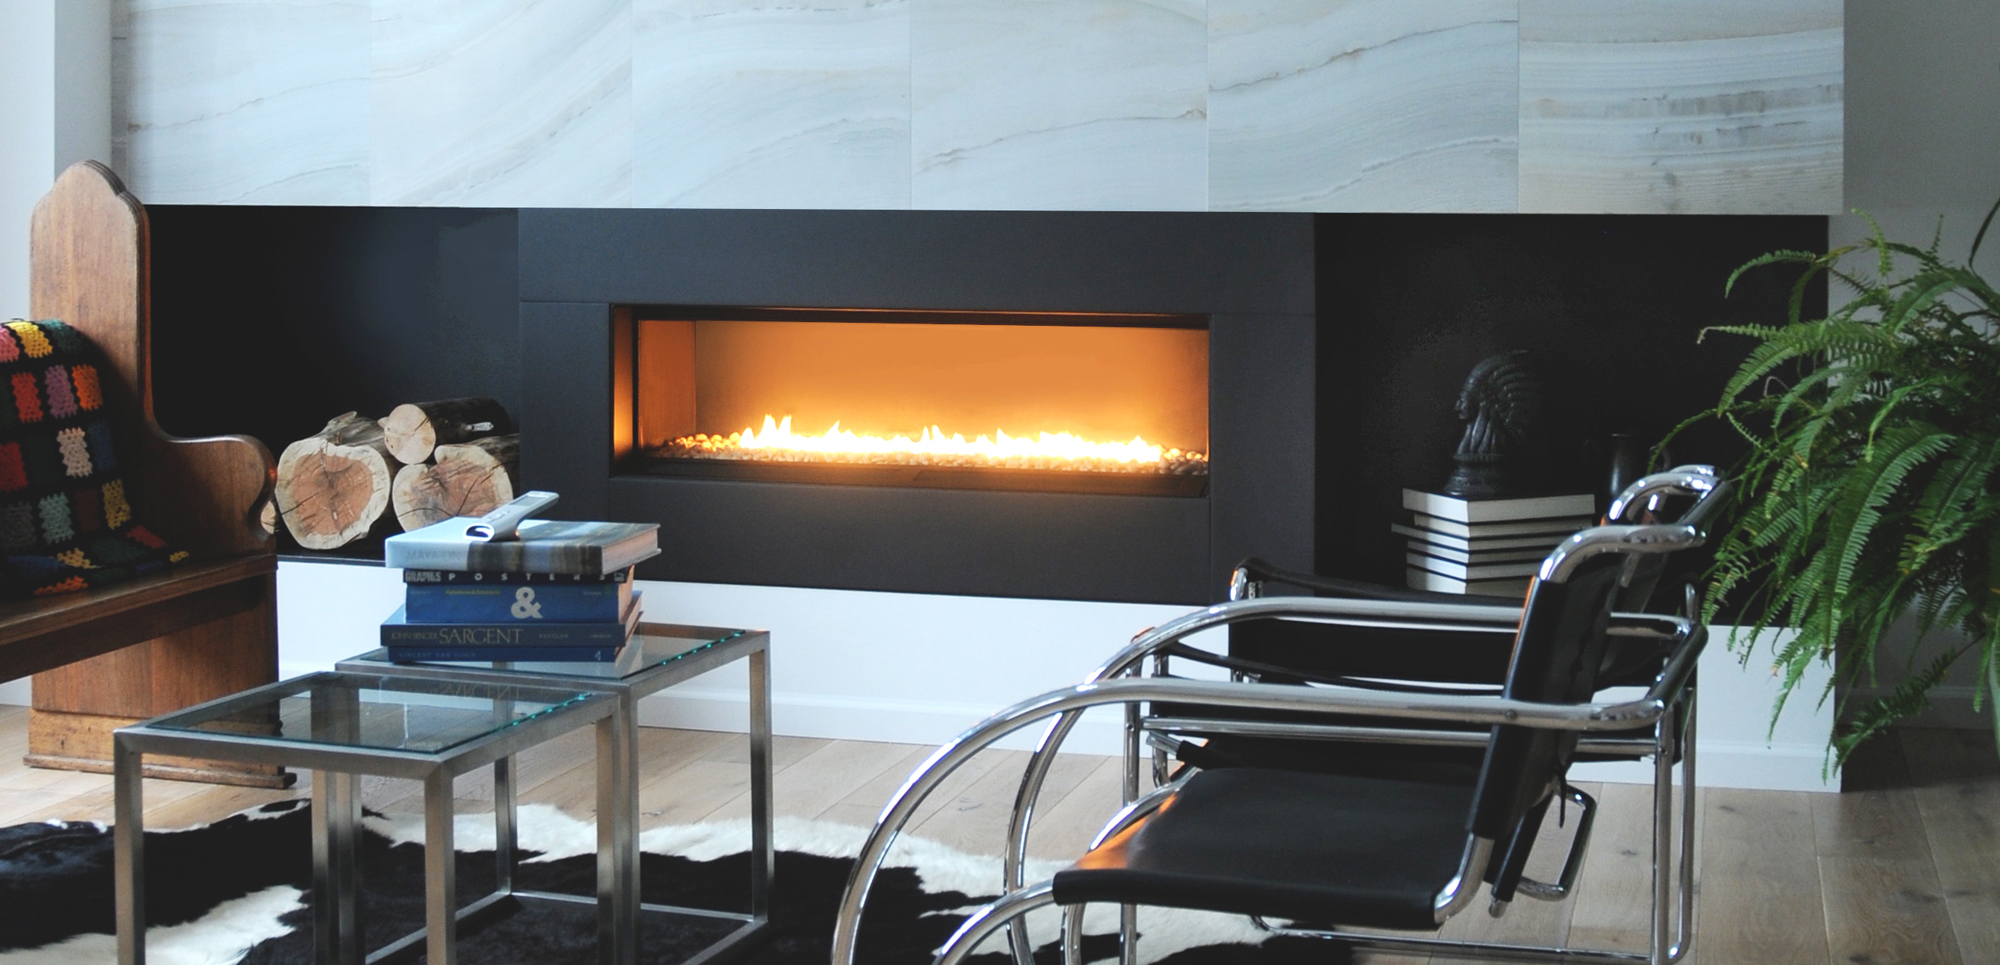 Spark Fireplaces Spark Modern Fires Contemporary Gas Fireplaces For